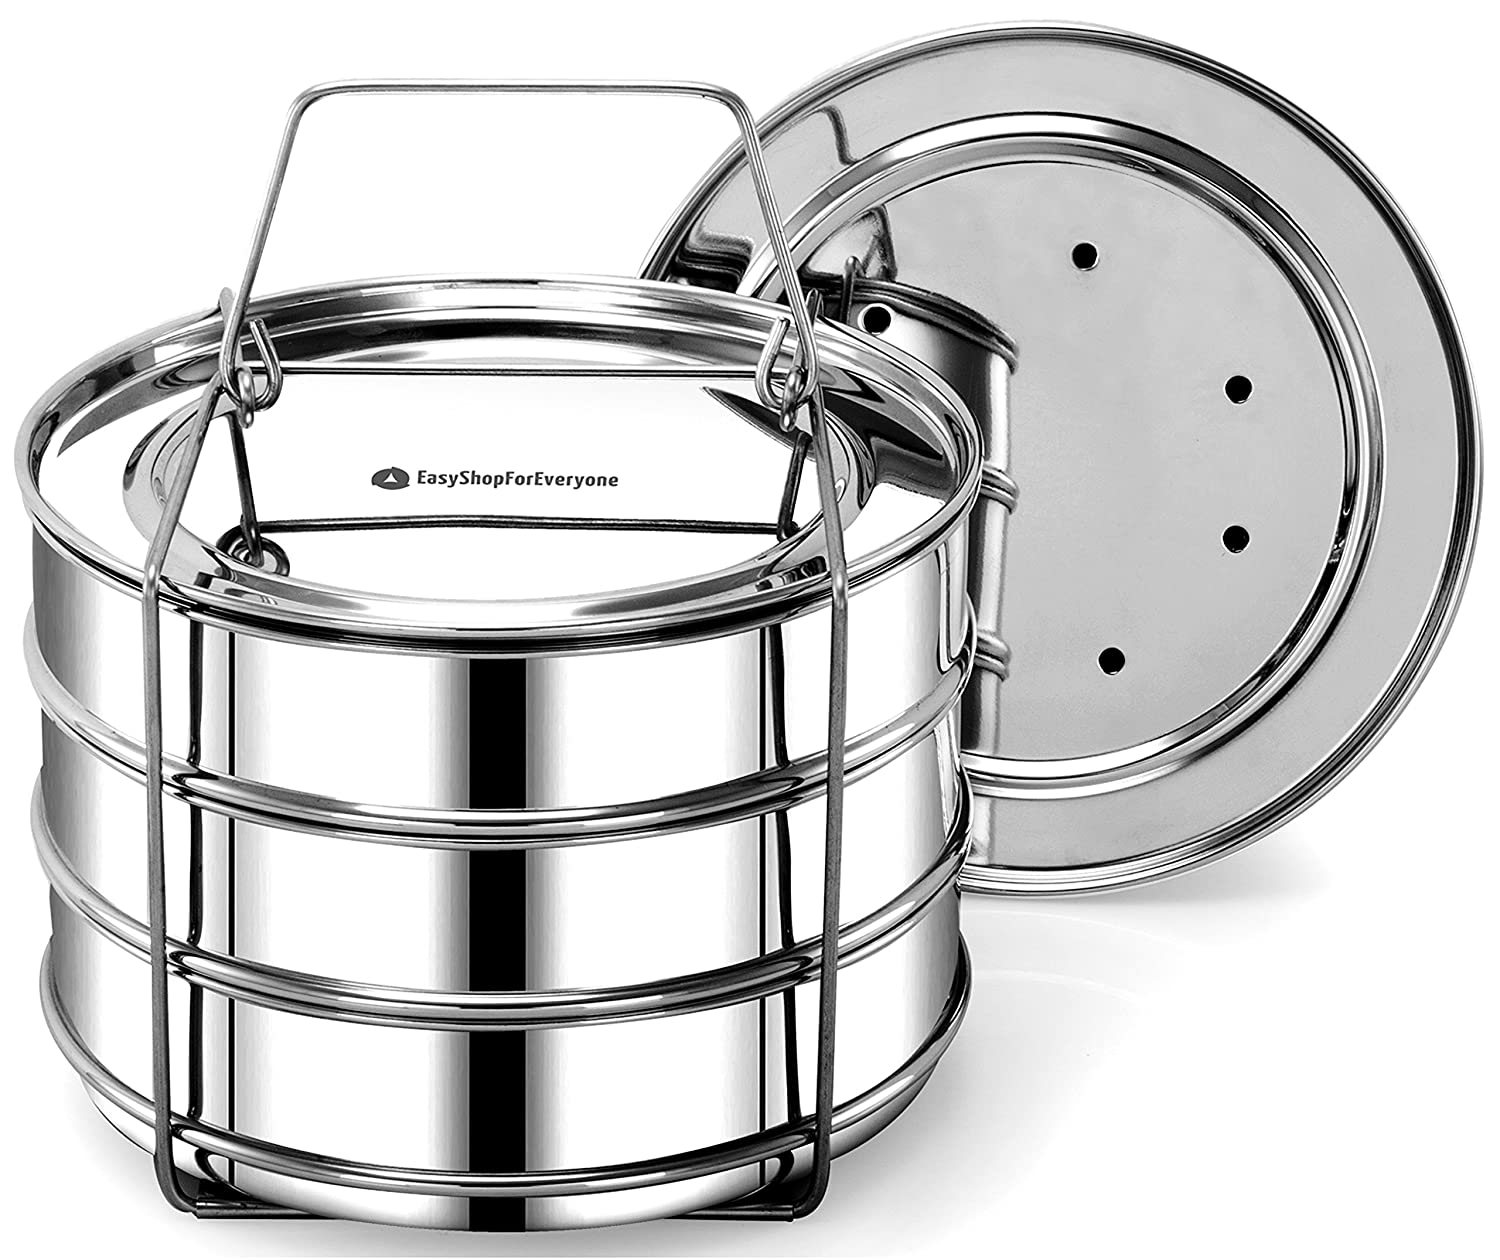 Stackable Steamer Insert Pans, Cook 3 Dishes, Pressure Cooker Accessory 6, 8 qt EasyShopForEveryone PCIP-3T-KJ